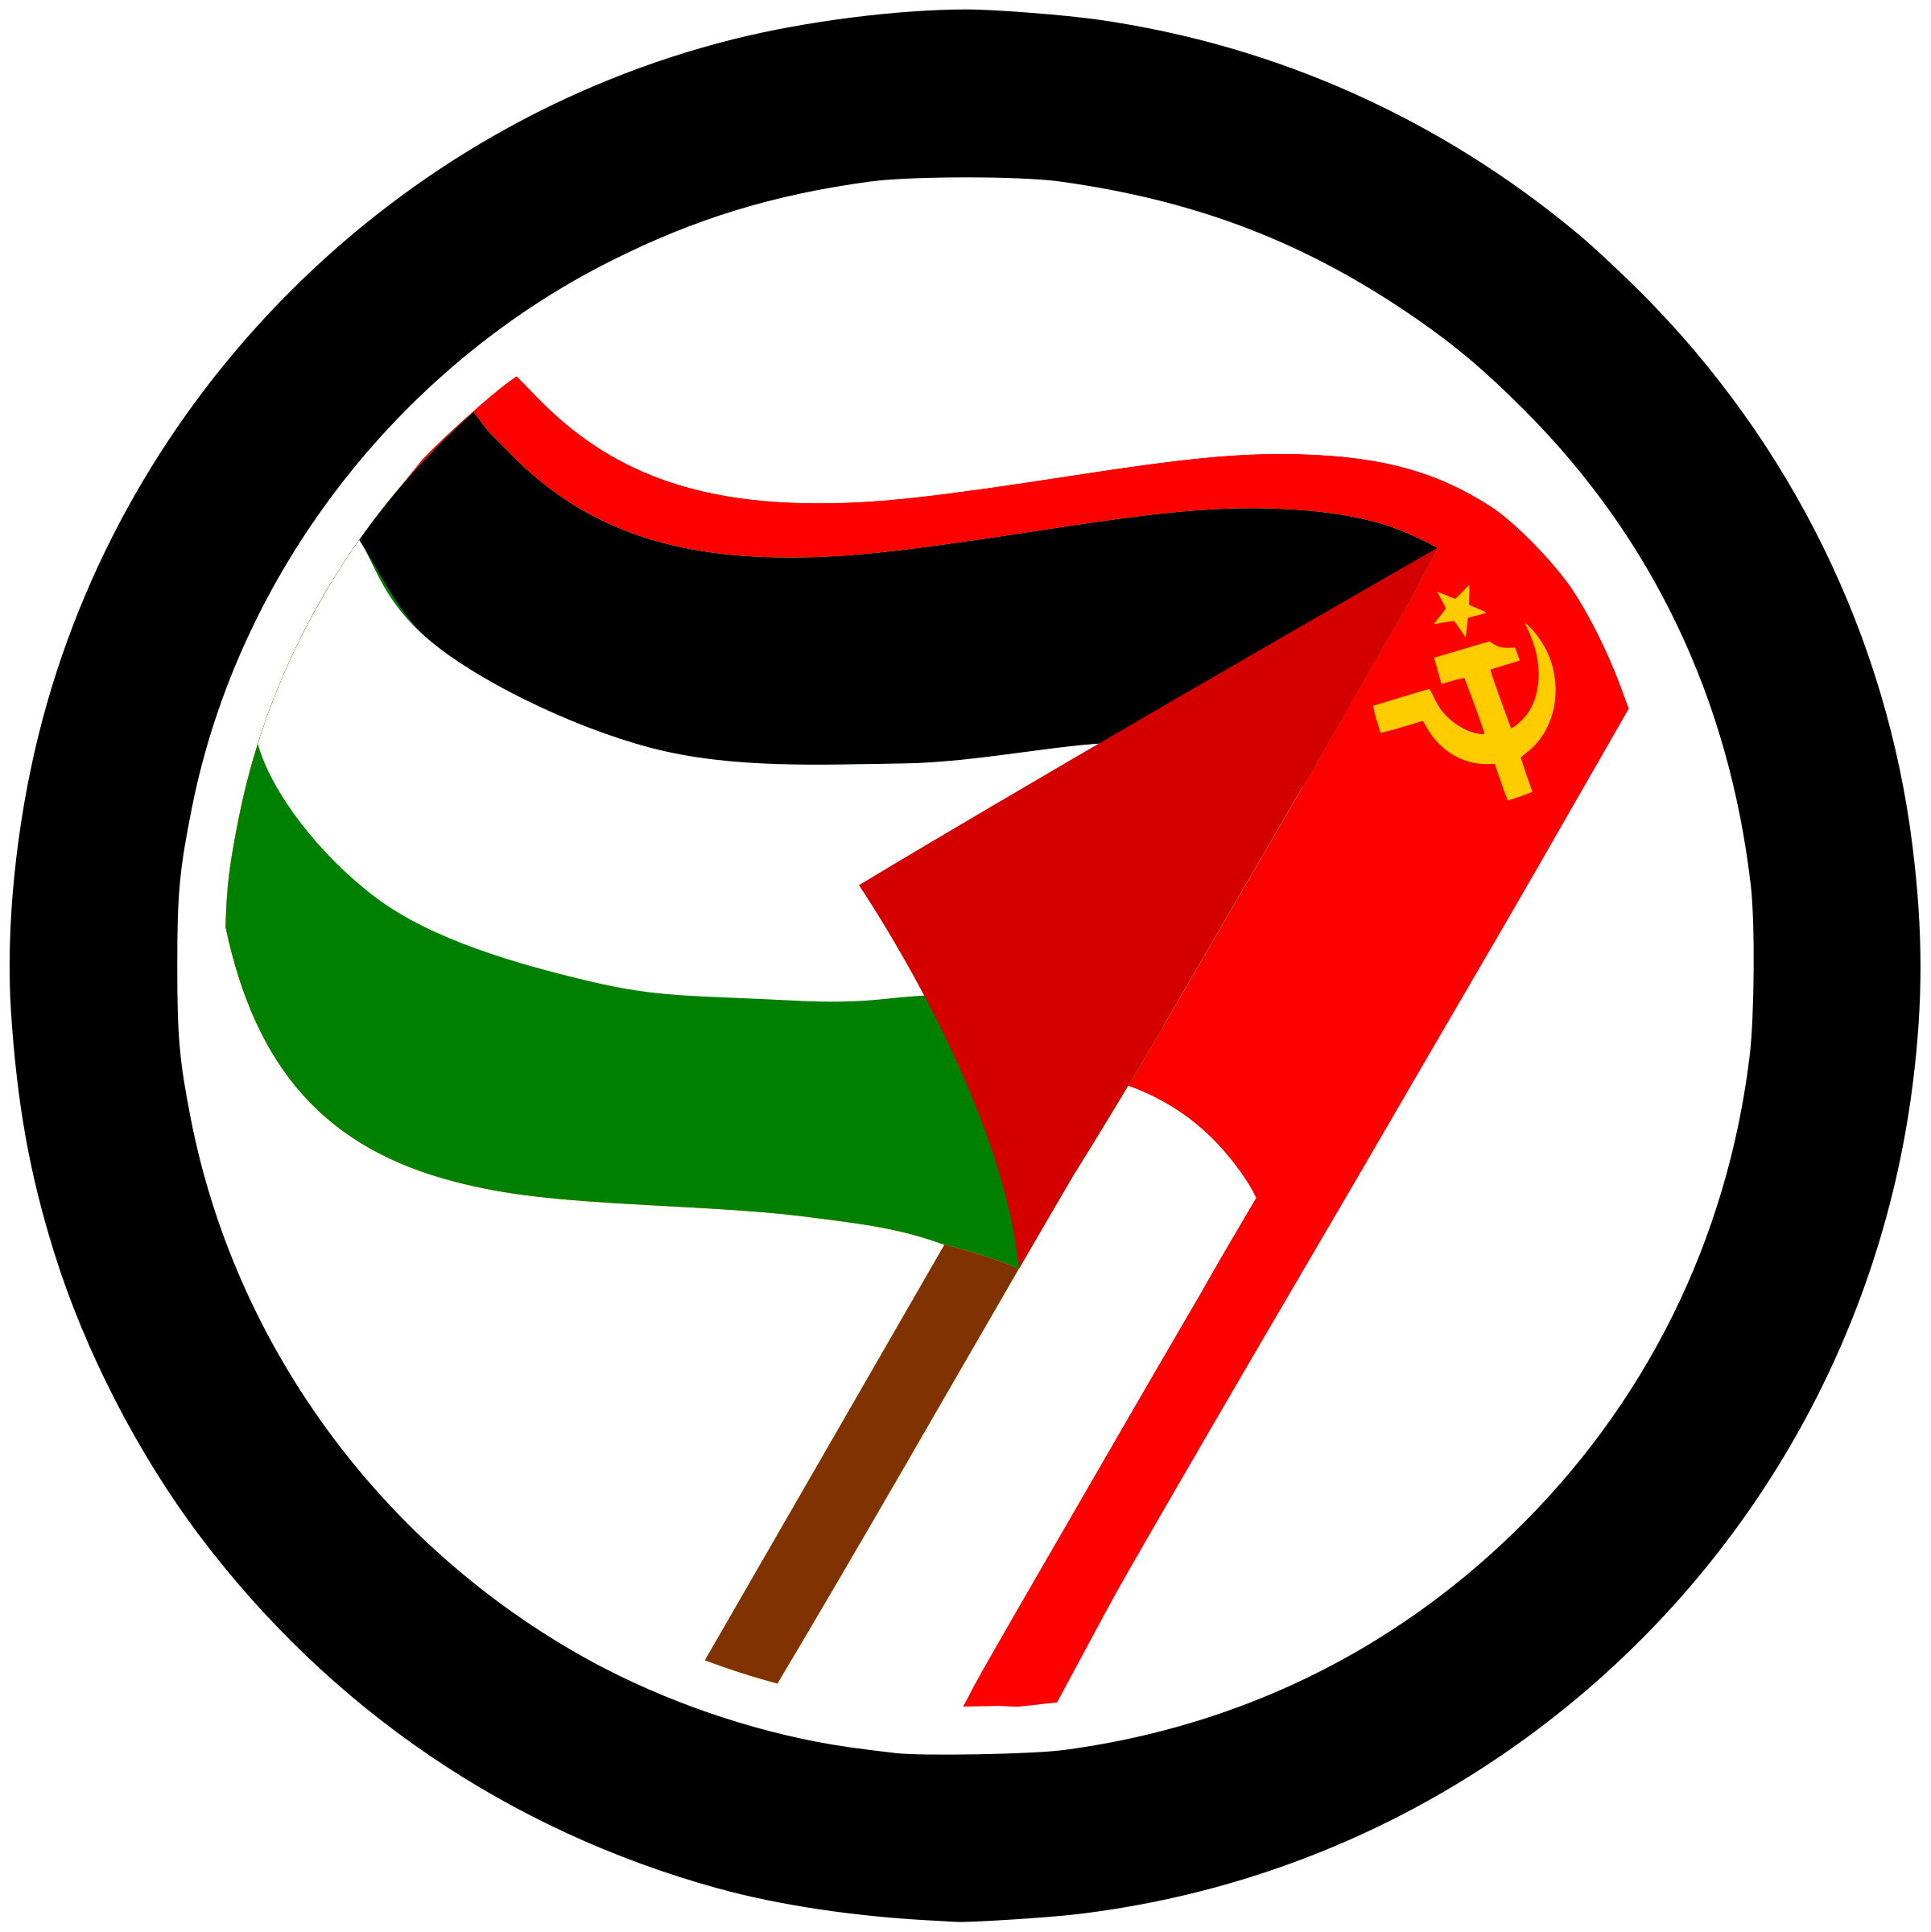 picture download Antiimperialist big image png. Action clipart